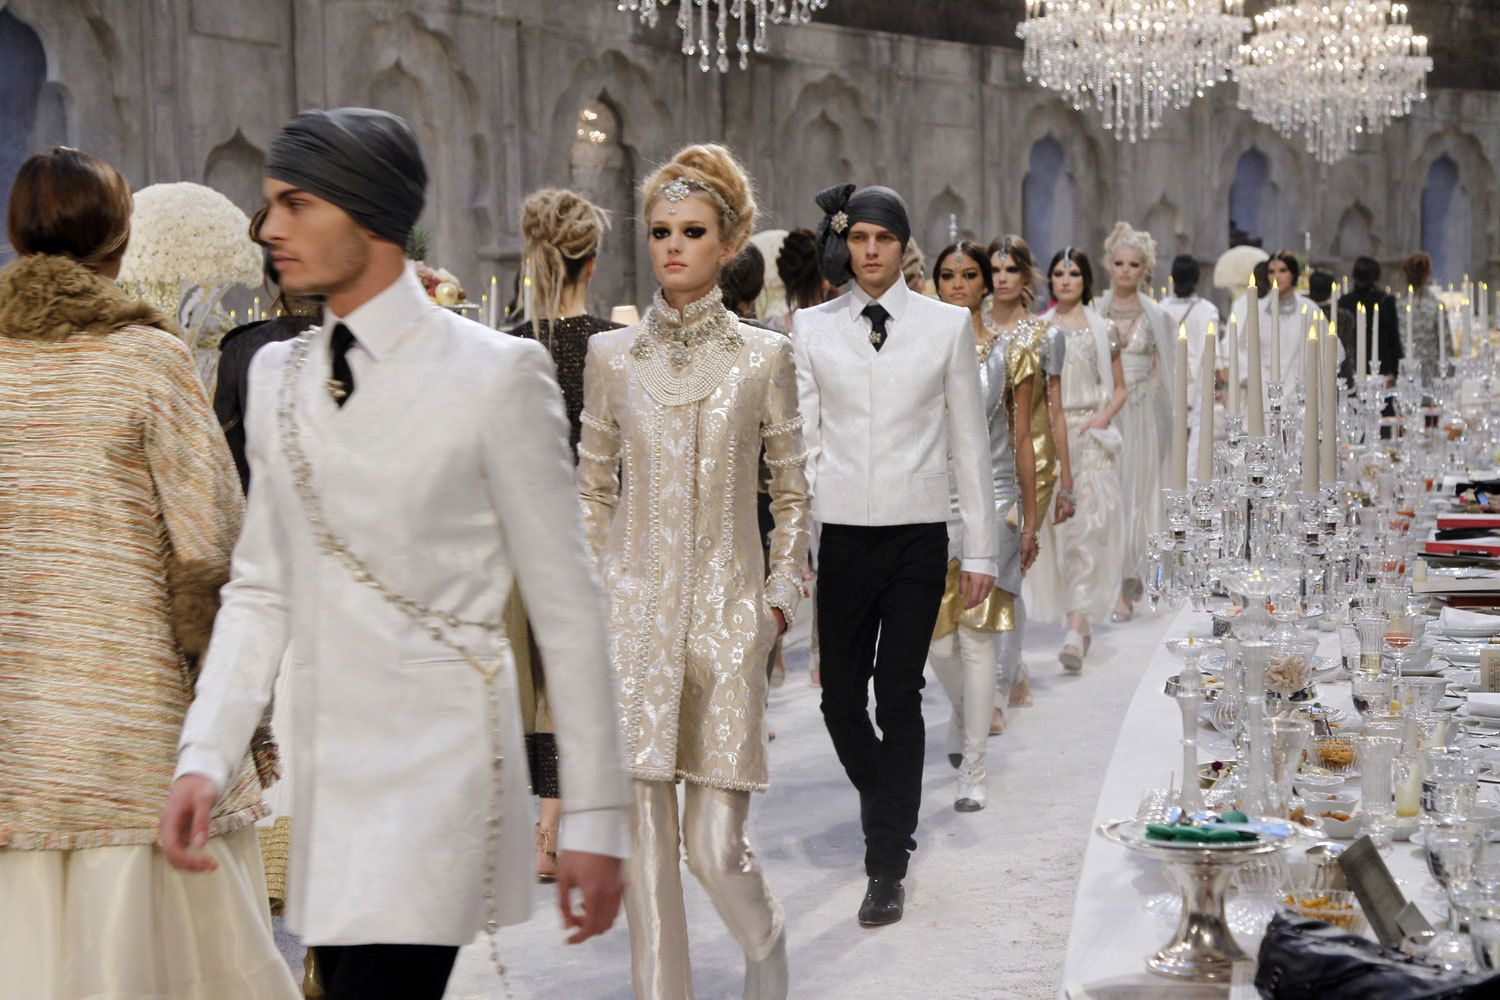 b33a8acfca5 Chanel show settings – Best Chanel shows ever